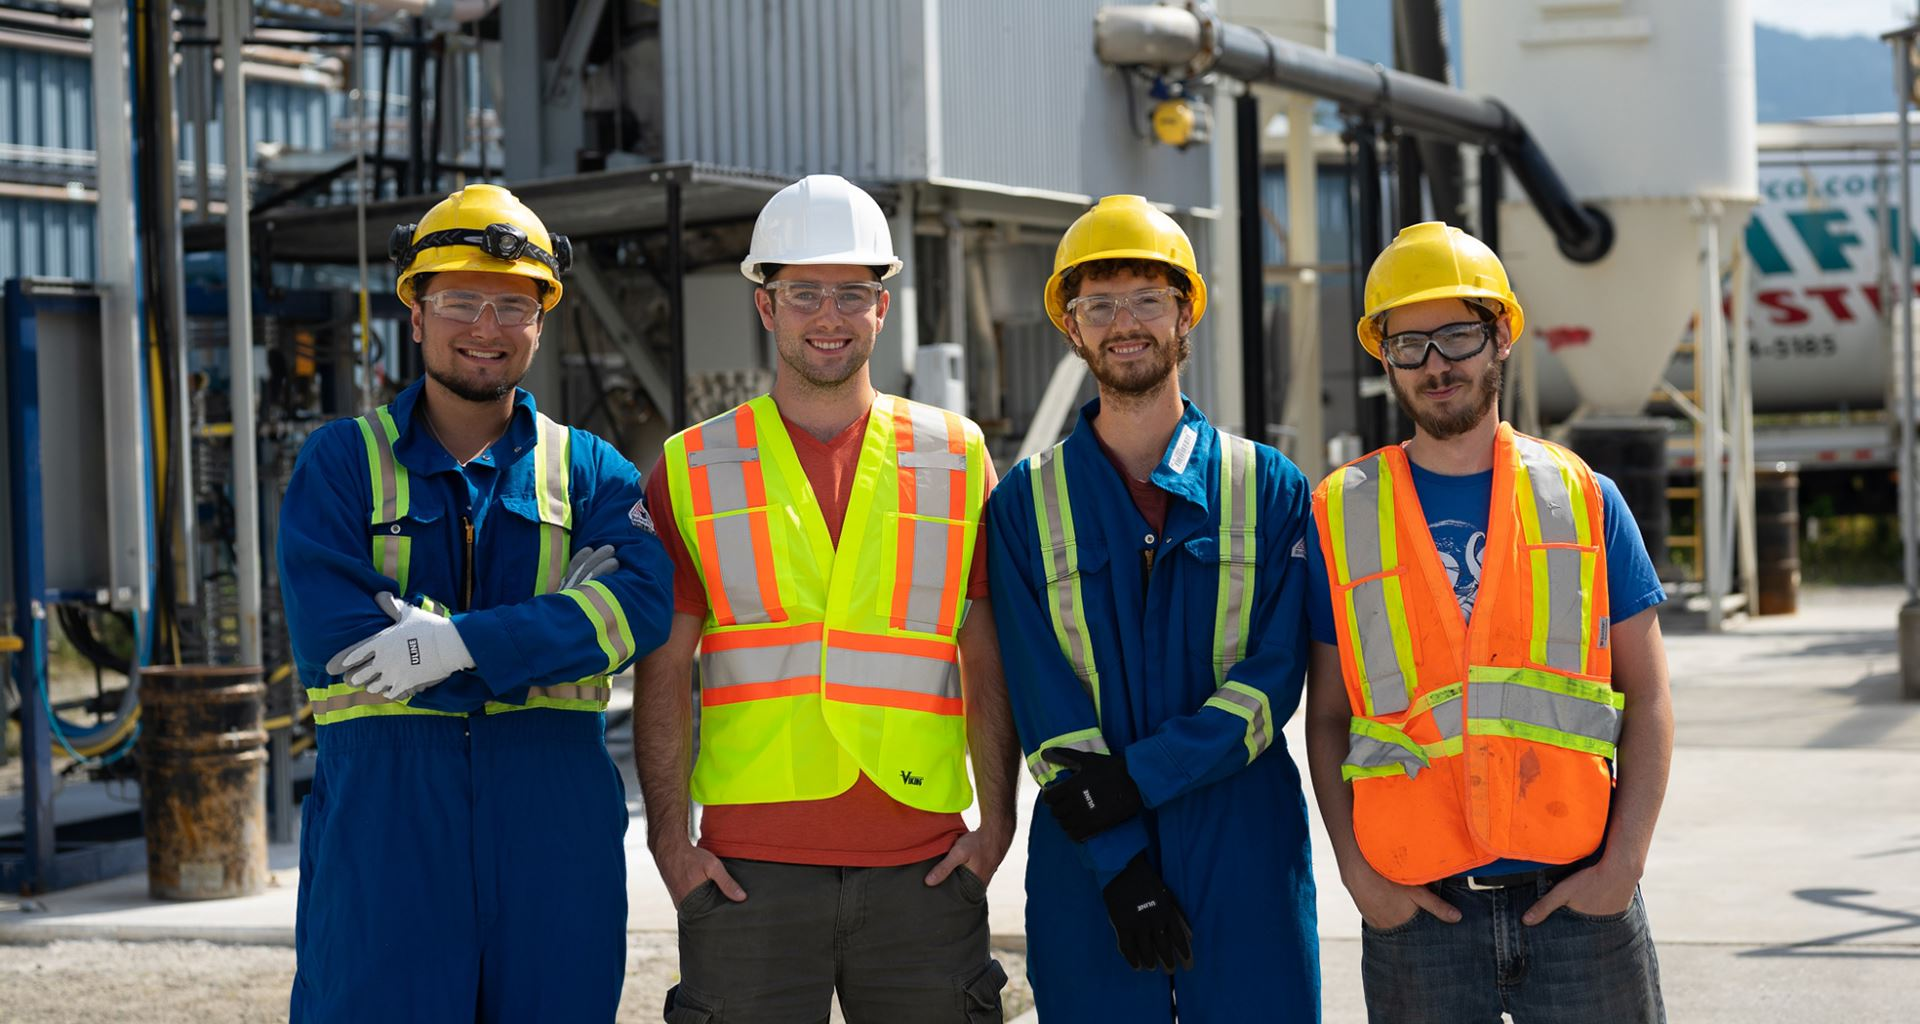 4 students stand at a construction site, wearing safety gear